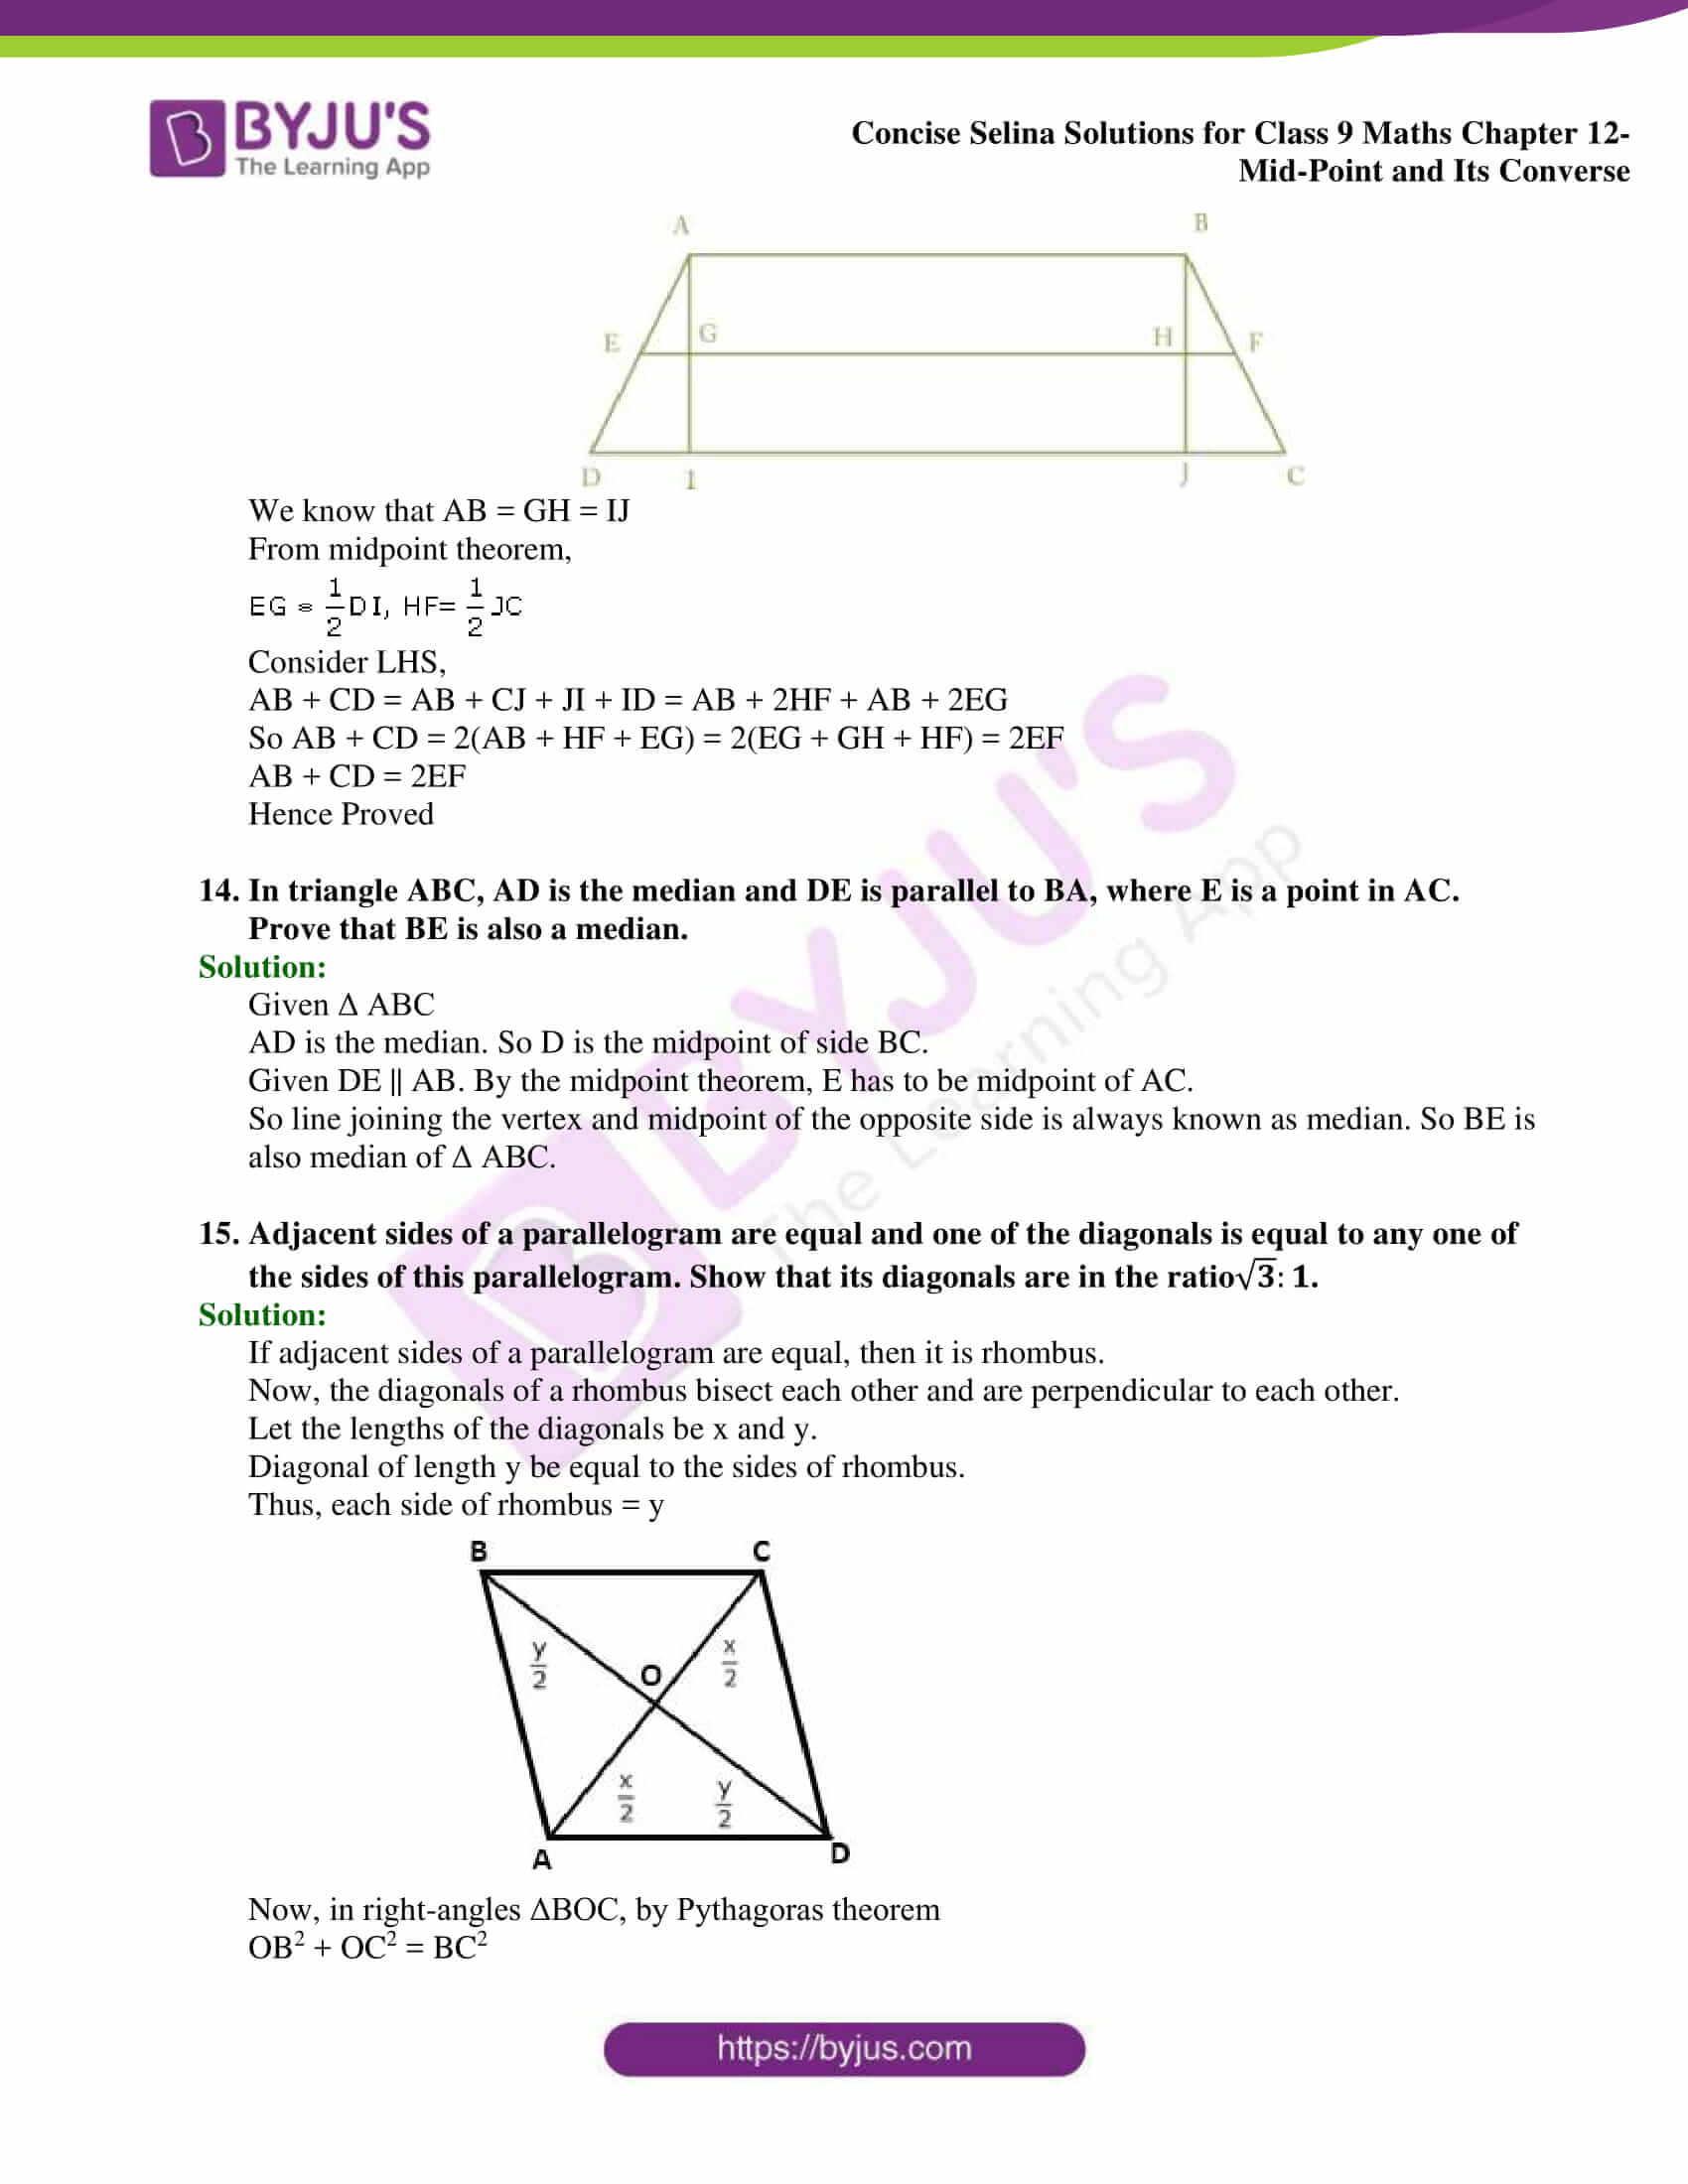 selina Solutions for Class 9 Maths Chapter 12 part 21